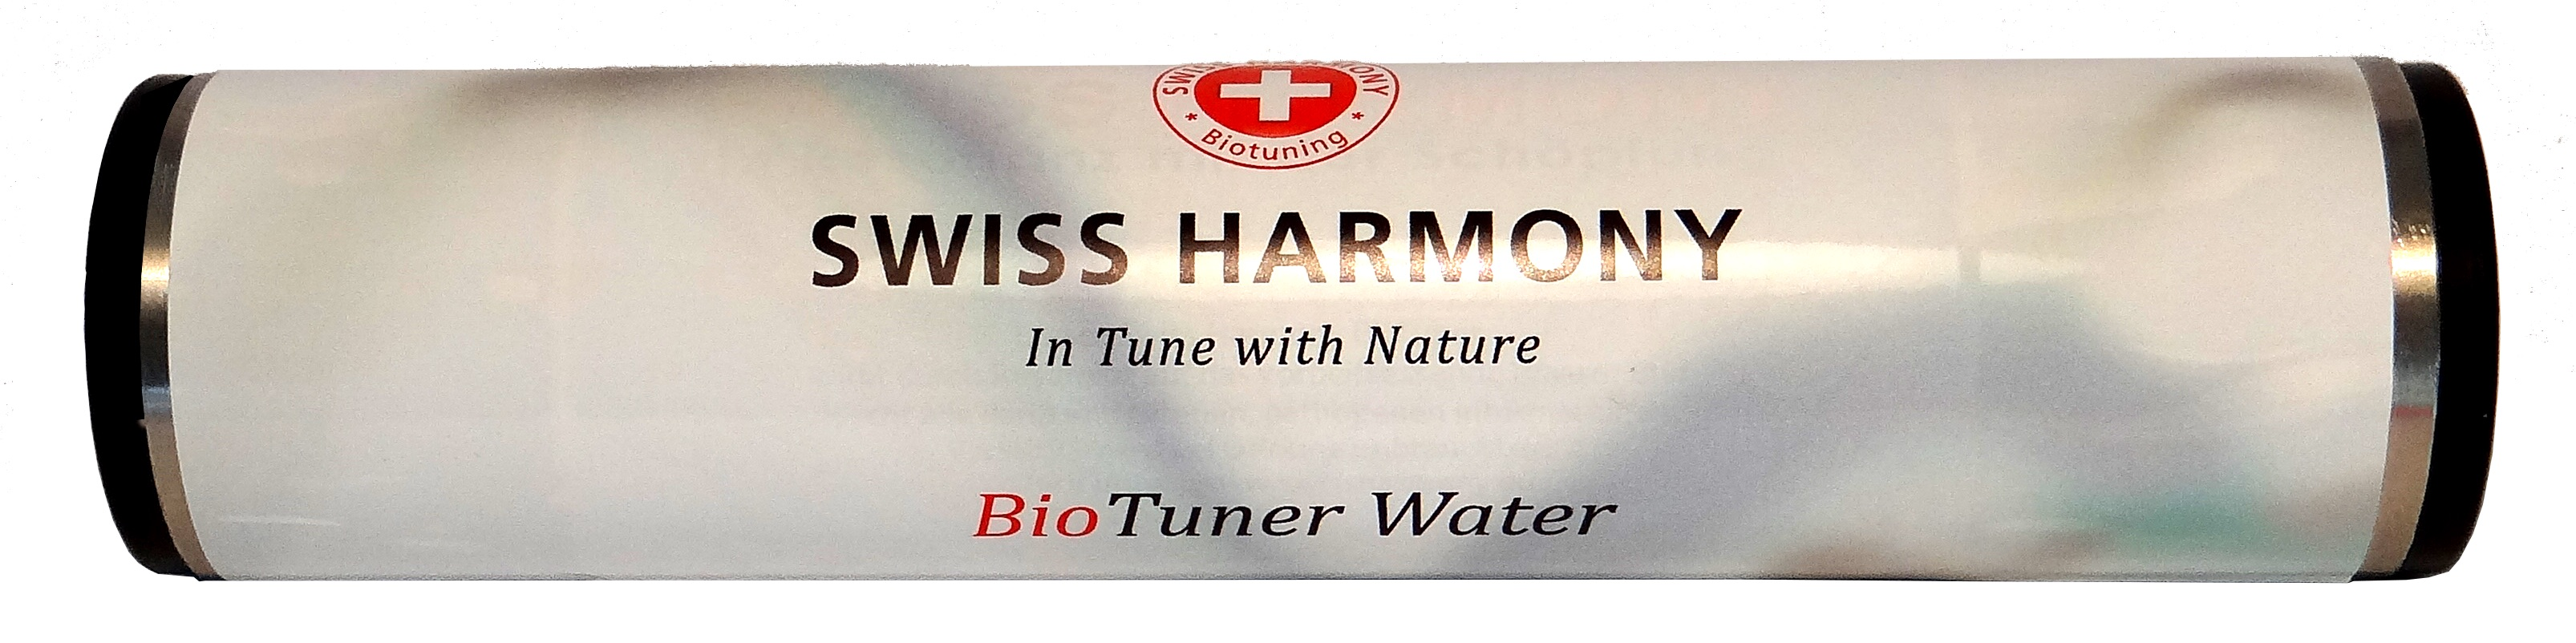 Swiss Harmony's BioTuner Water provides 'spring water-like' drinking water.